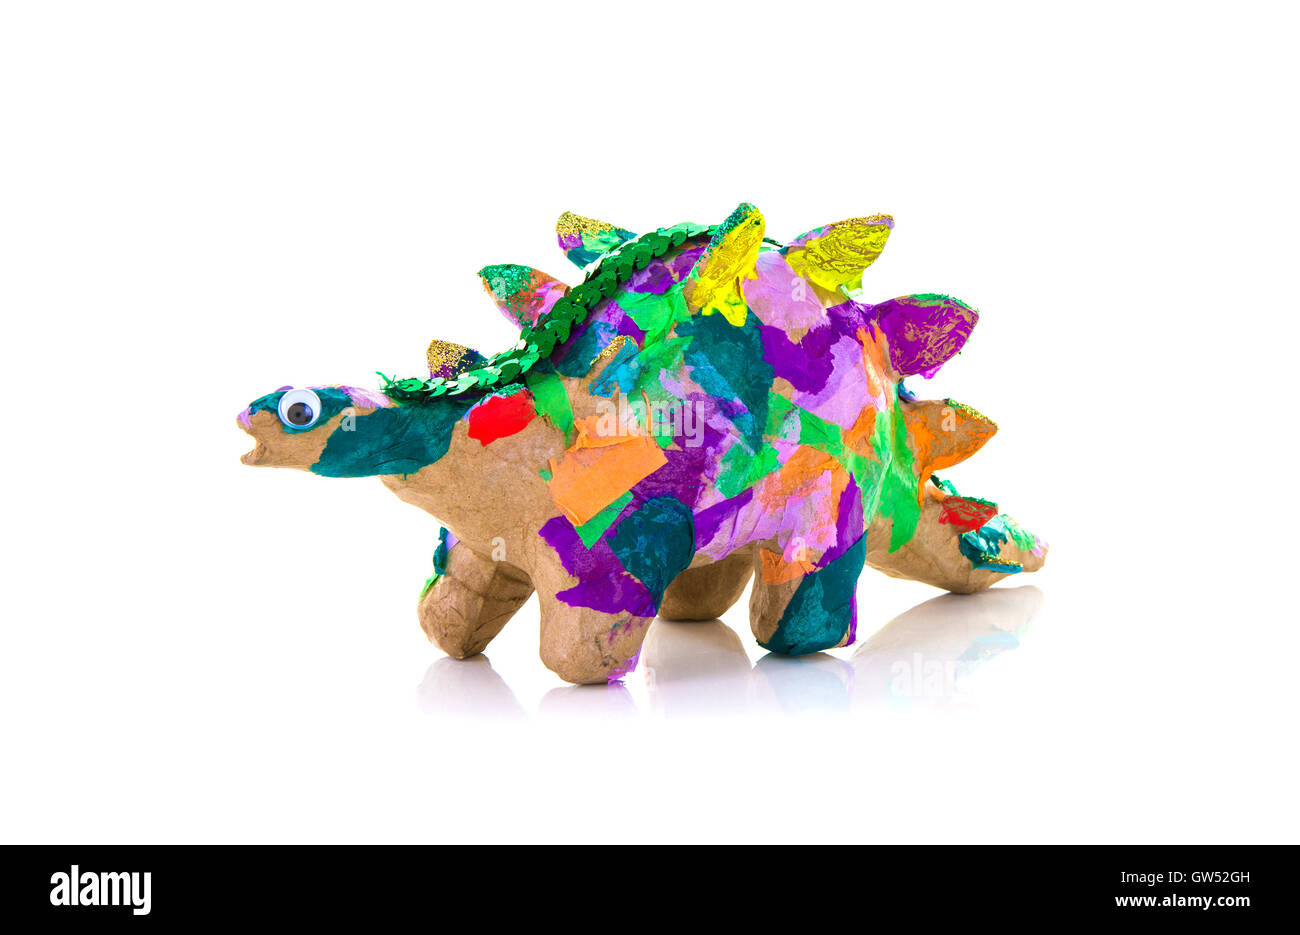 Colouful Hand Made Paper Mache Dinosaur on a White Background - Stock Image